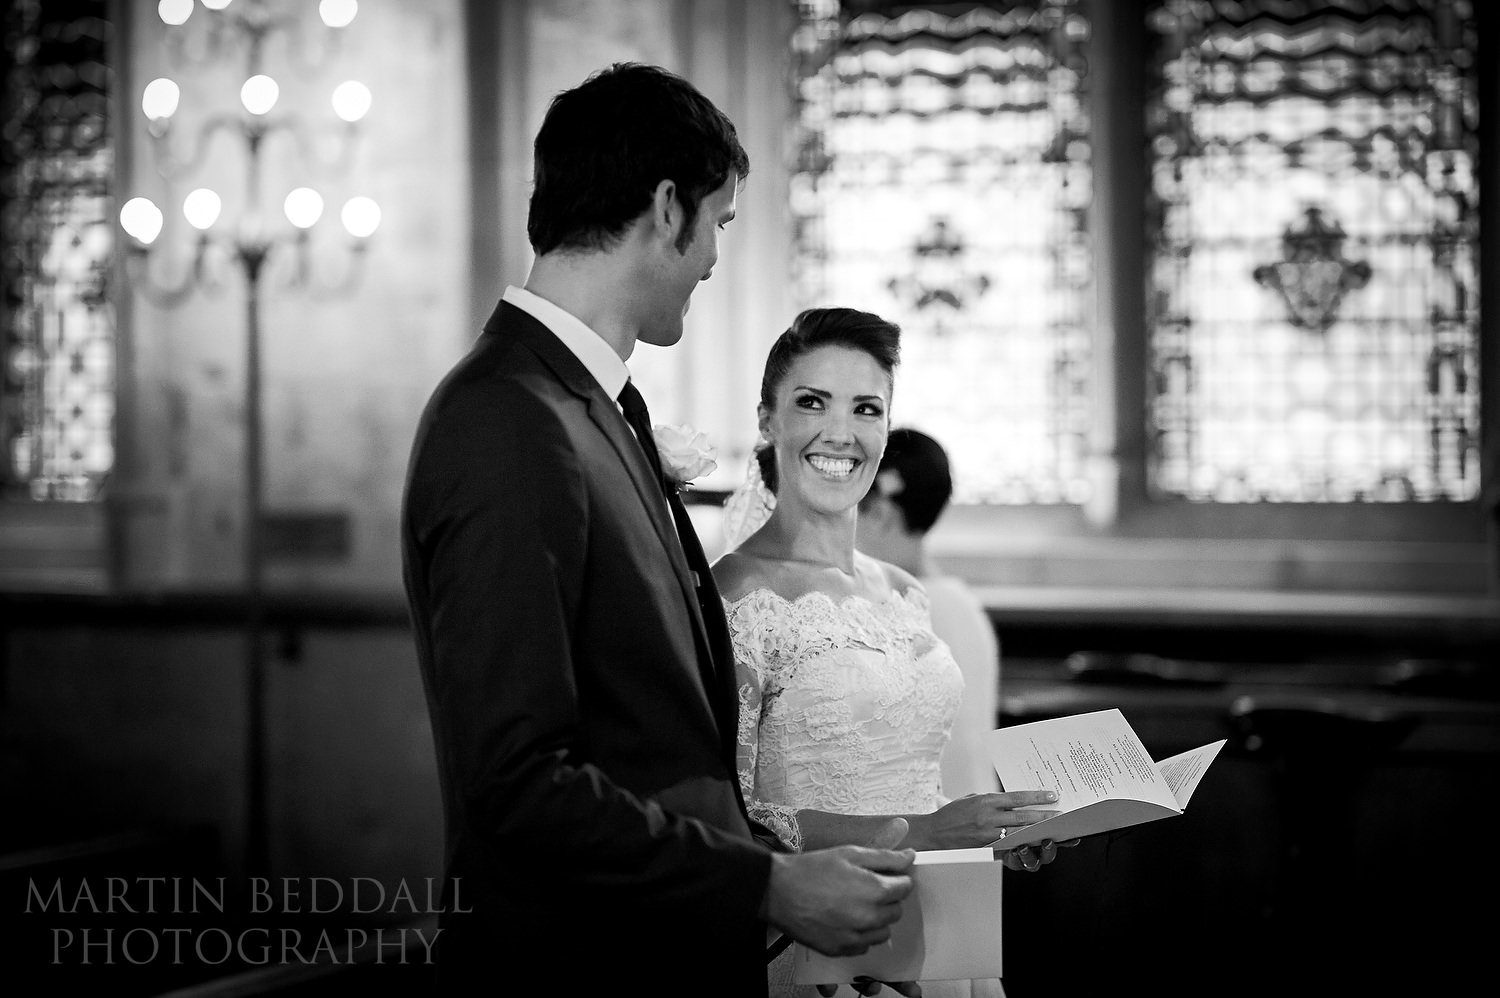 Wedding at St Etheldreda's